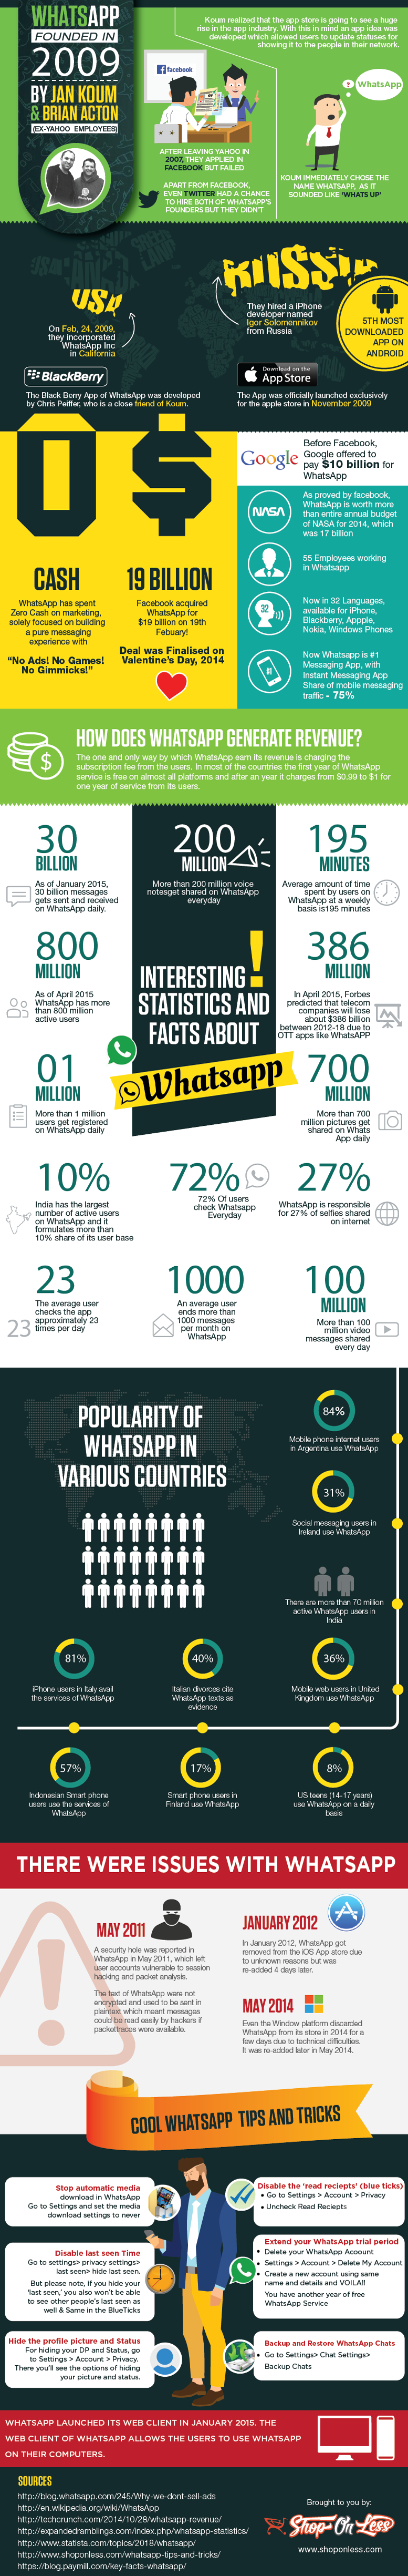 47+ Interesting Facts & Stats About WhatsApp